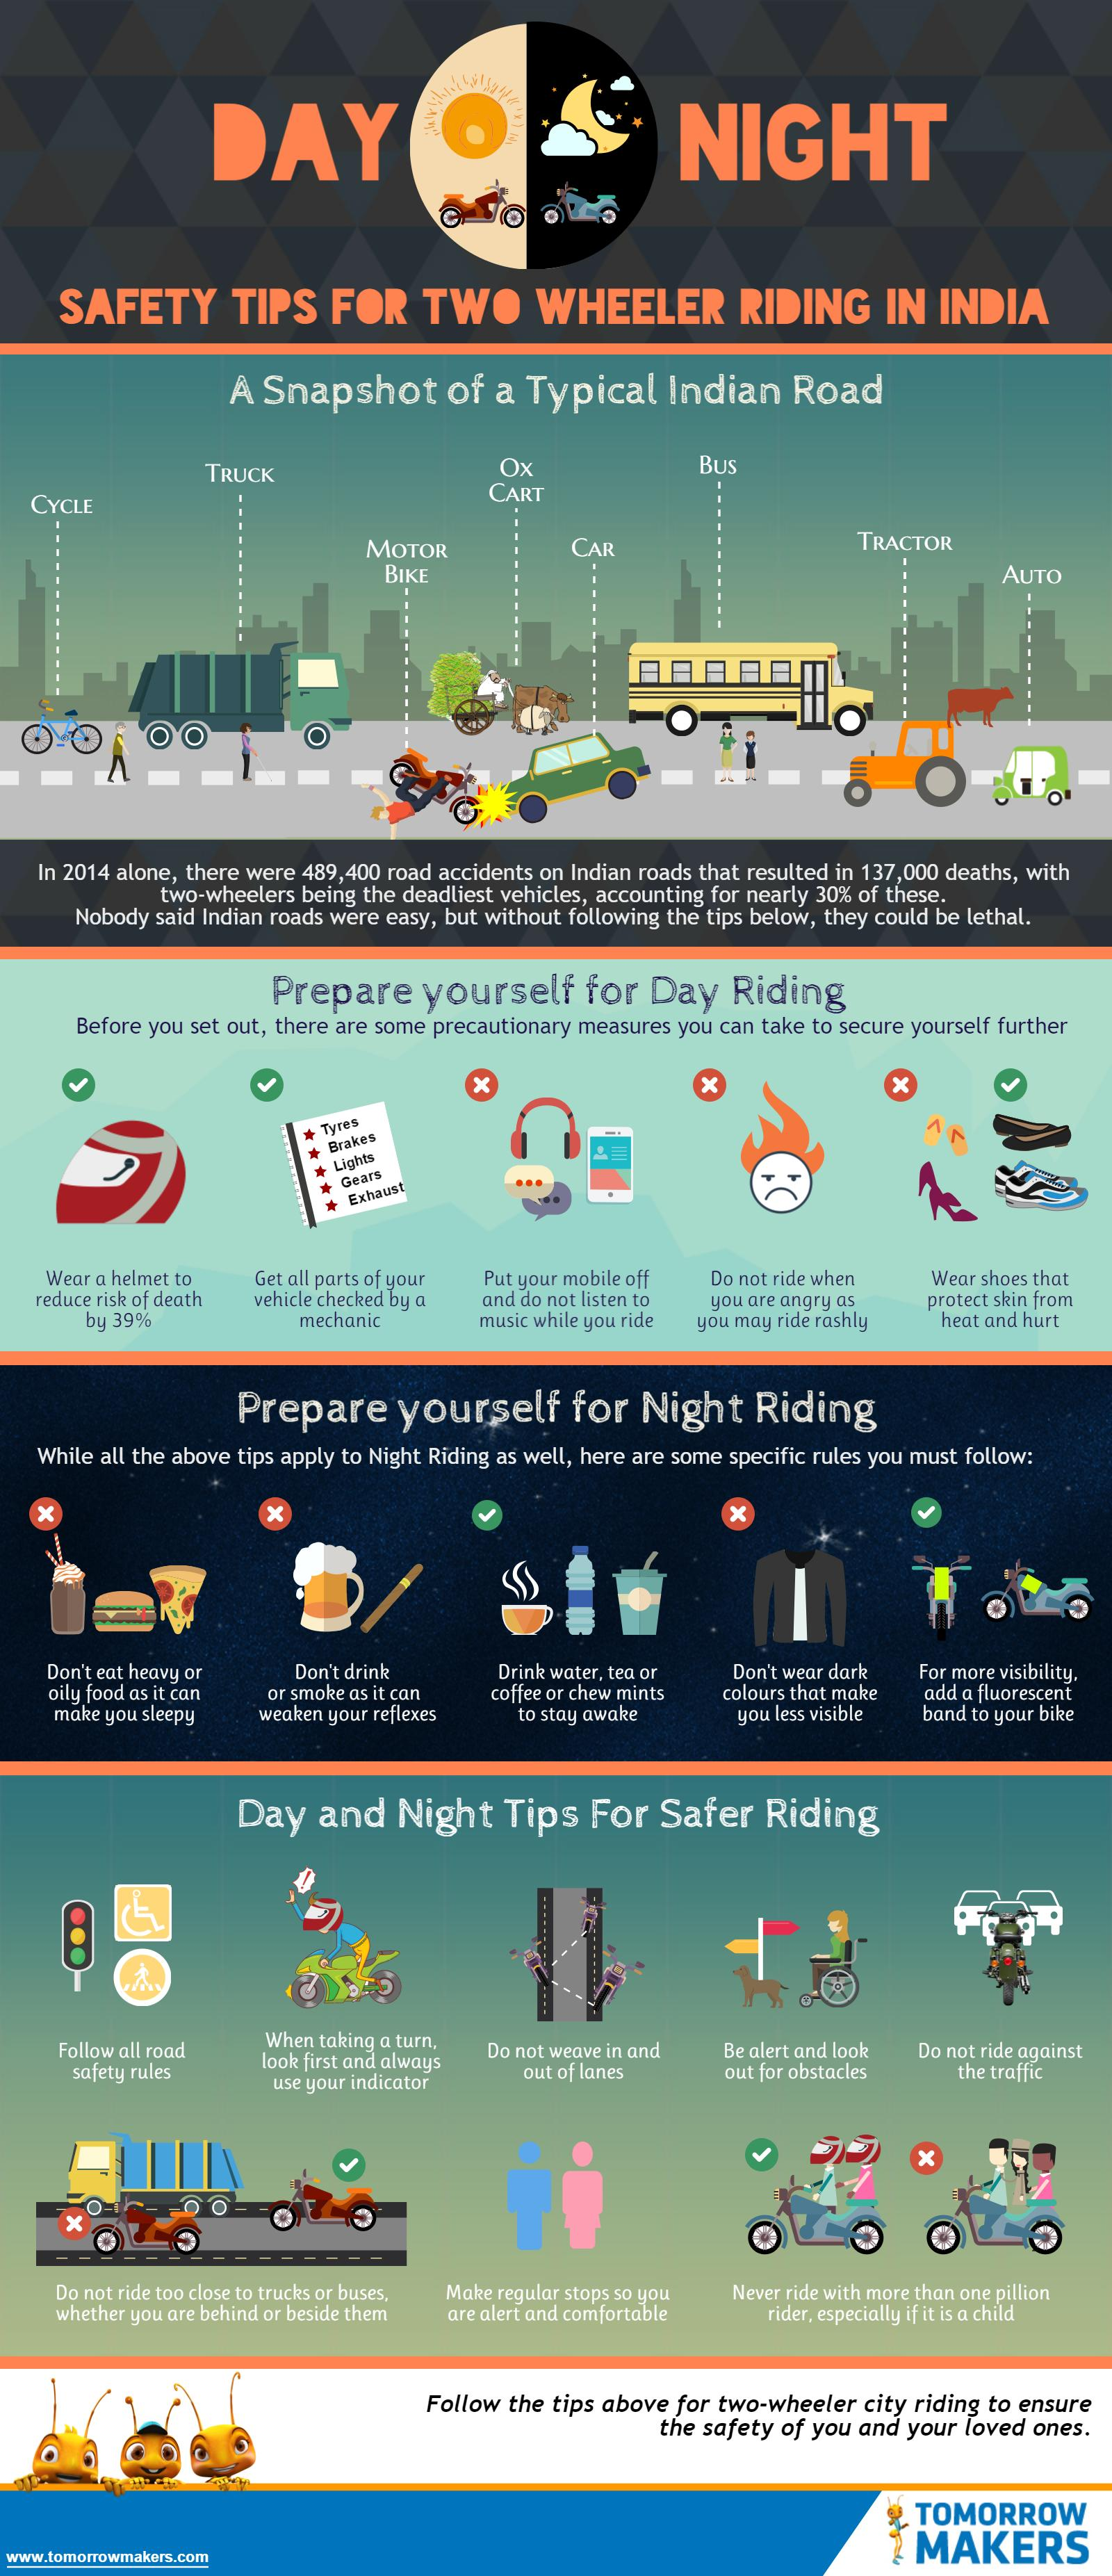 day-and-night-safety-tips-for-two-wheelers-riding-in-india-infographic